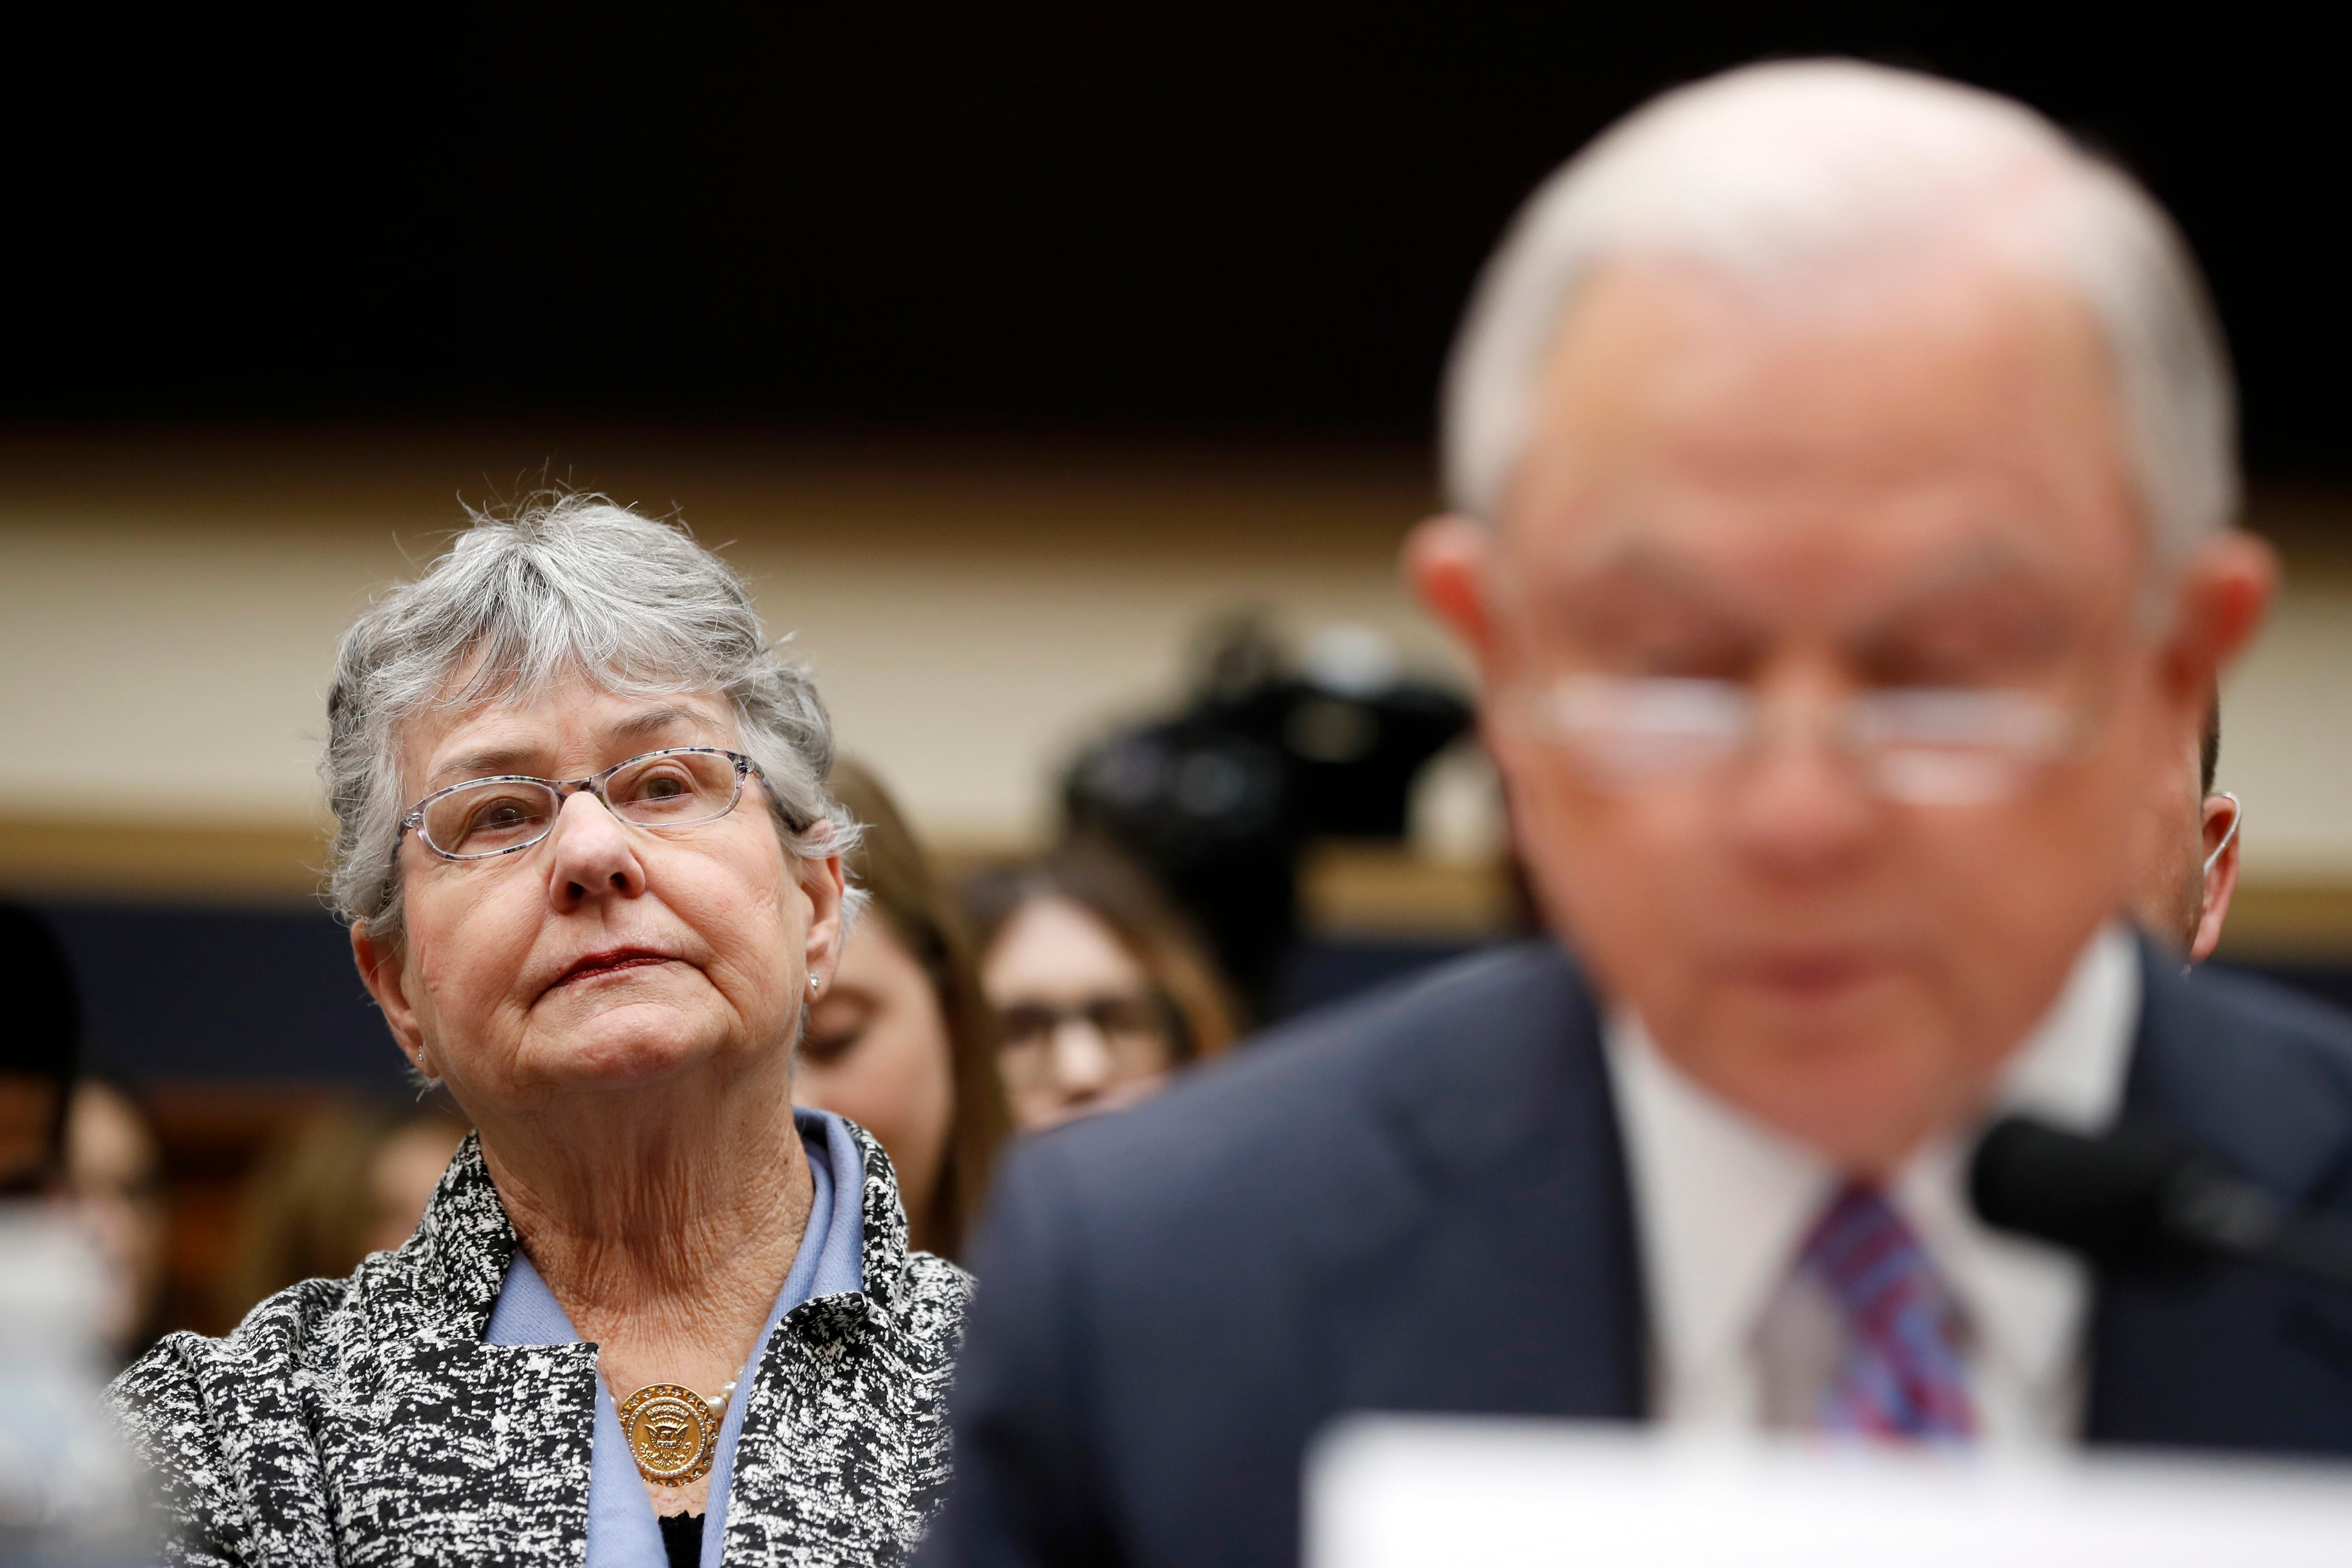 Mary Sessions, left, listens as her husband Attorney General Jeff Sessions speaks during a House Judiciary Committee hearing on Capitol Hill, Tuesday, Nov. 14, 2017 in Washington. (AP Photo/Alex Brandon)